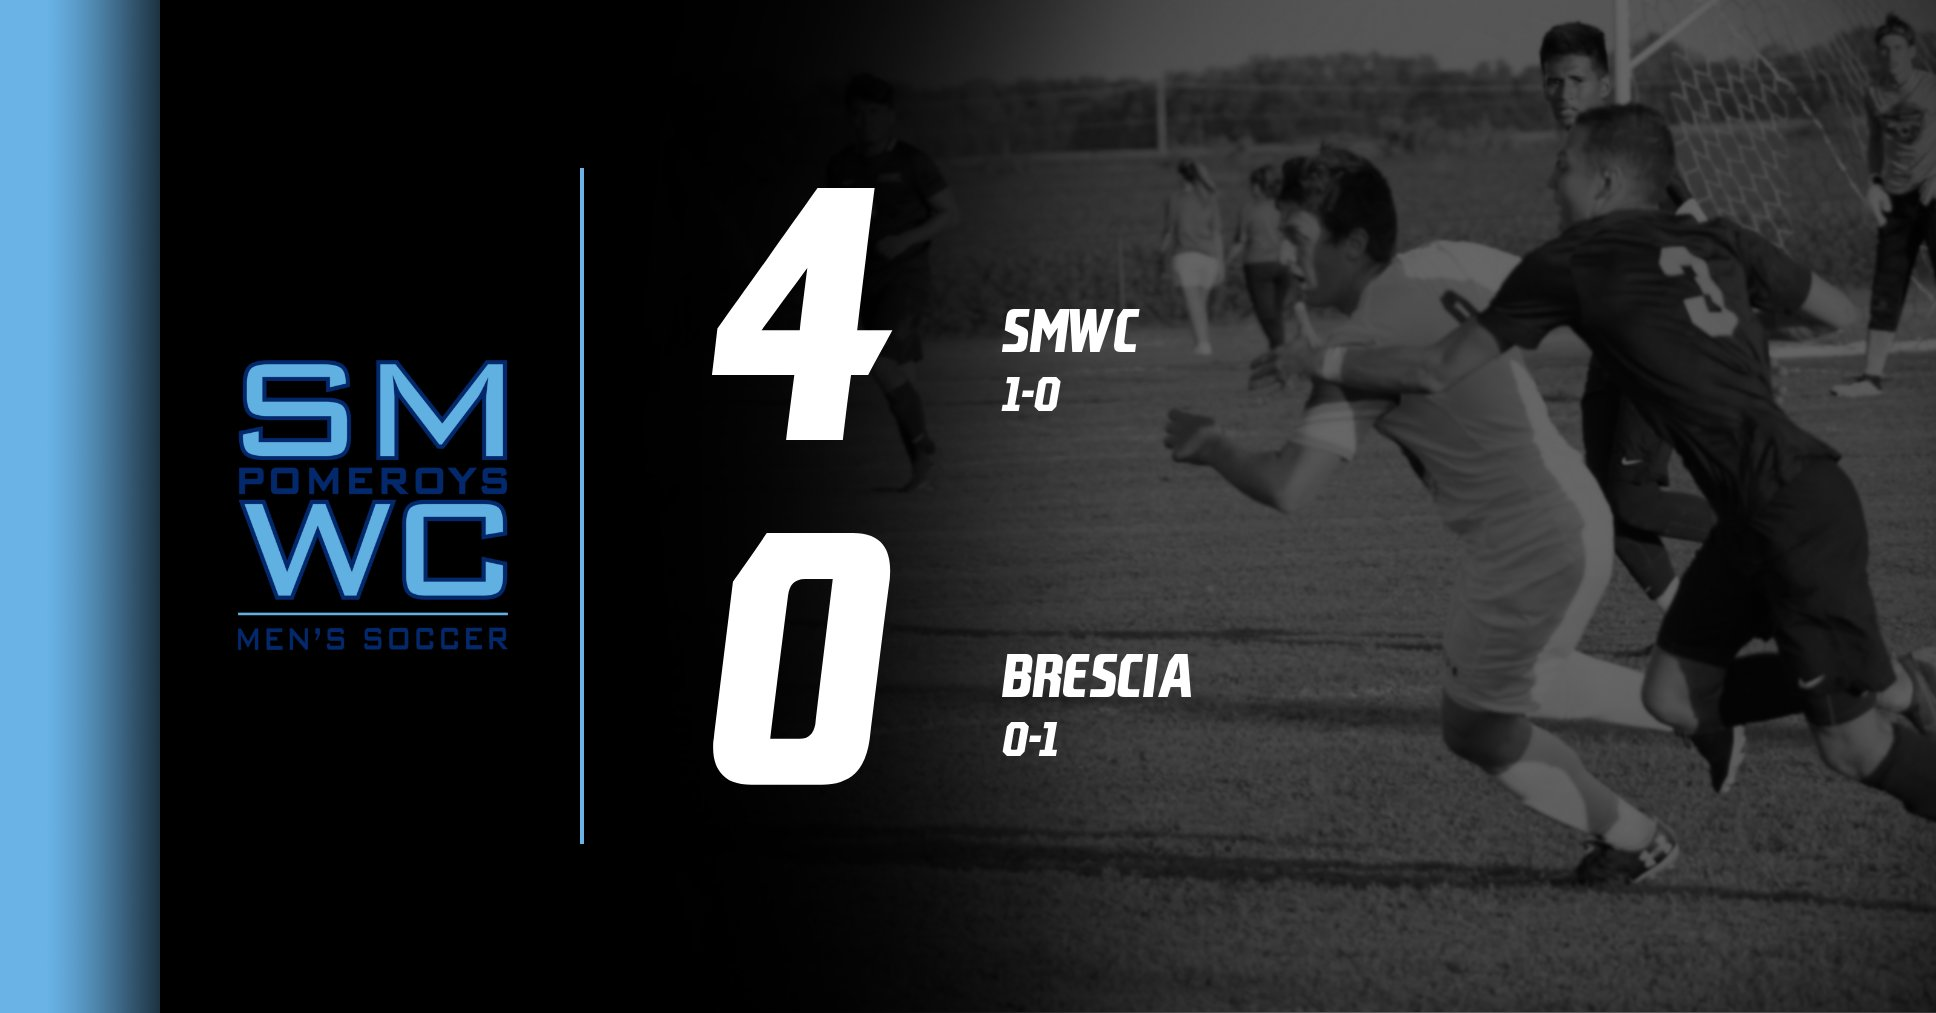 Men's Soccer Makes A Statement with 4-0 Pounding of Brescia